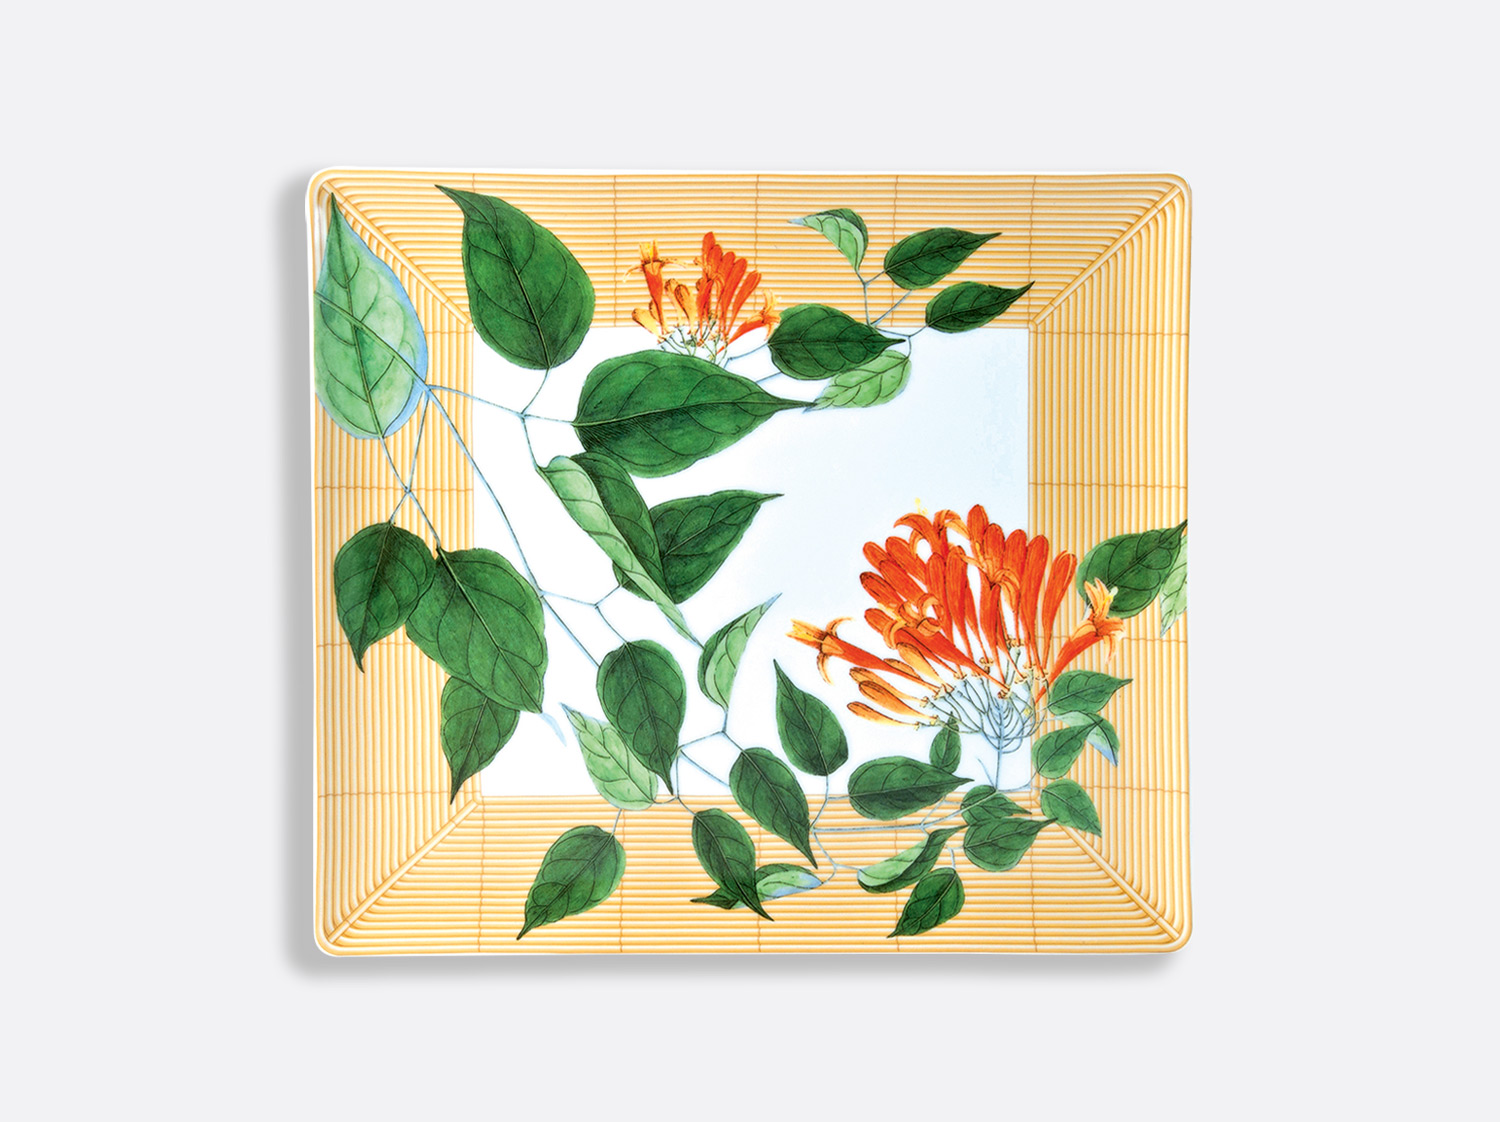 China Rectangular tray 26,5 cm x 23,5 cm of the collection Jardin indien | Bernardaud